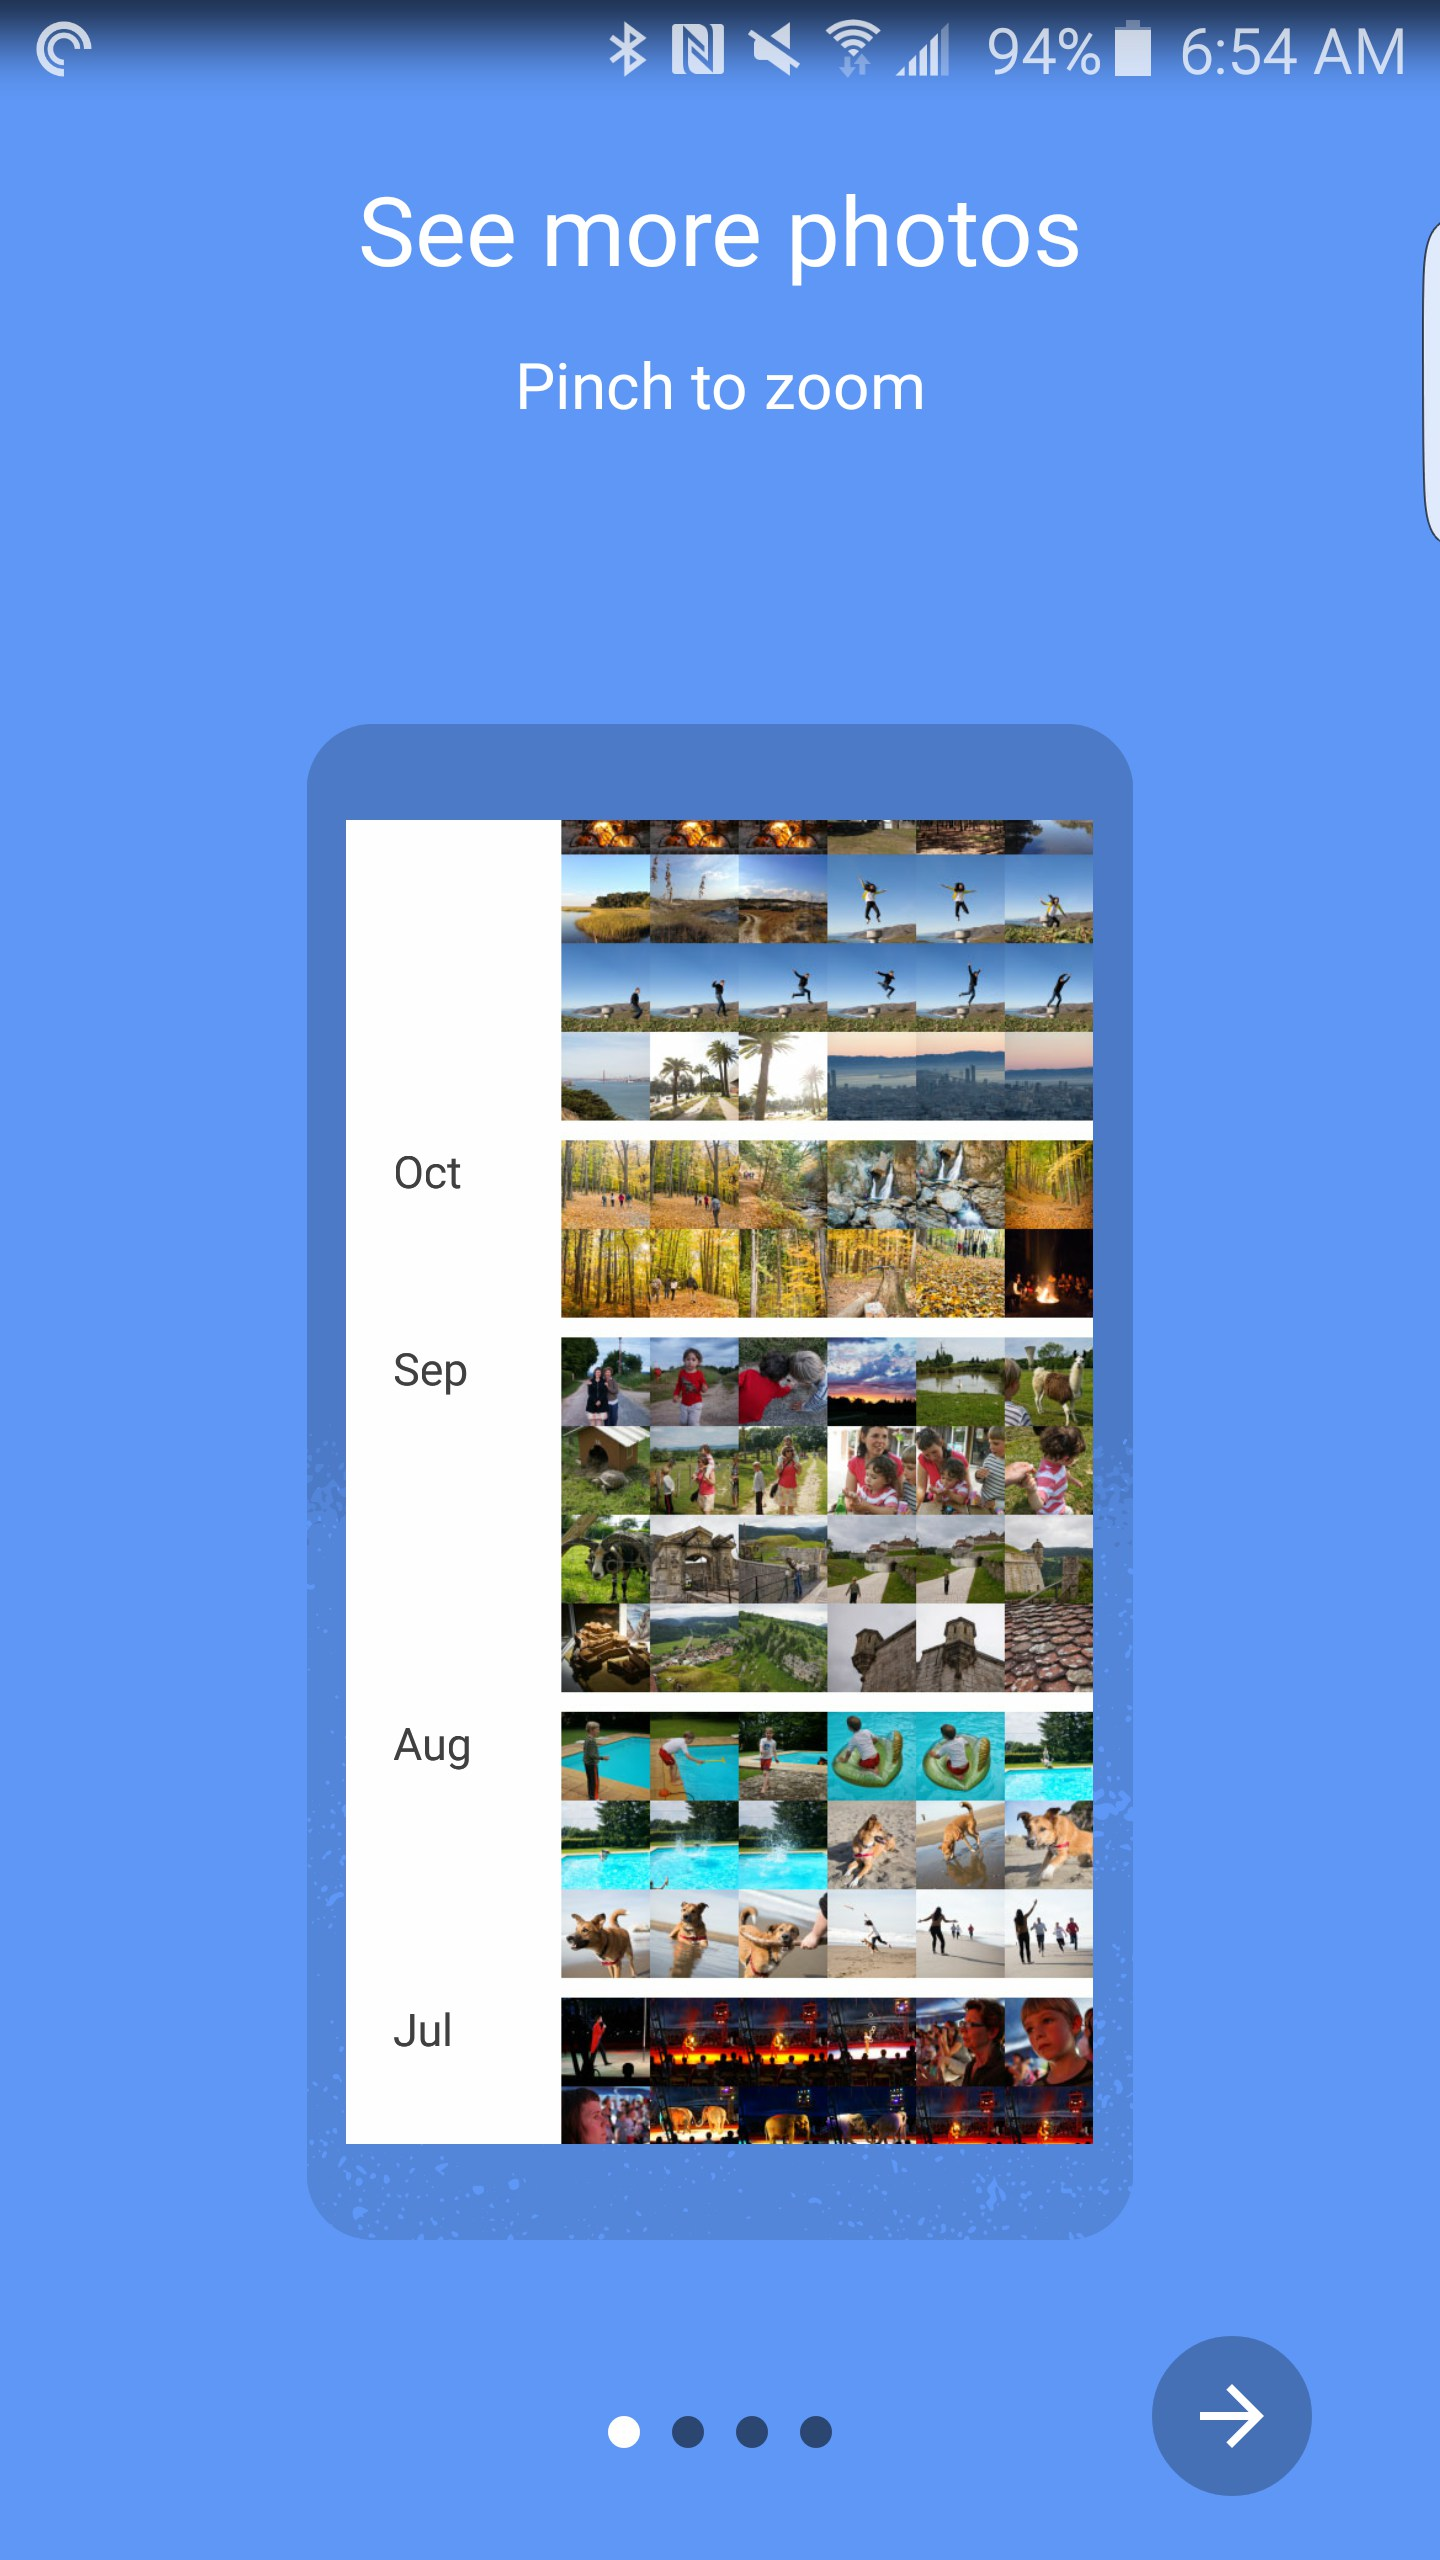 how to download frommy phone to google photos